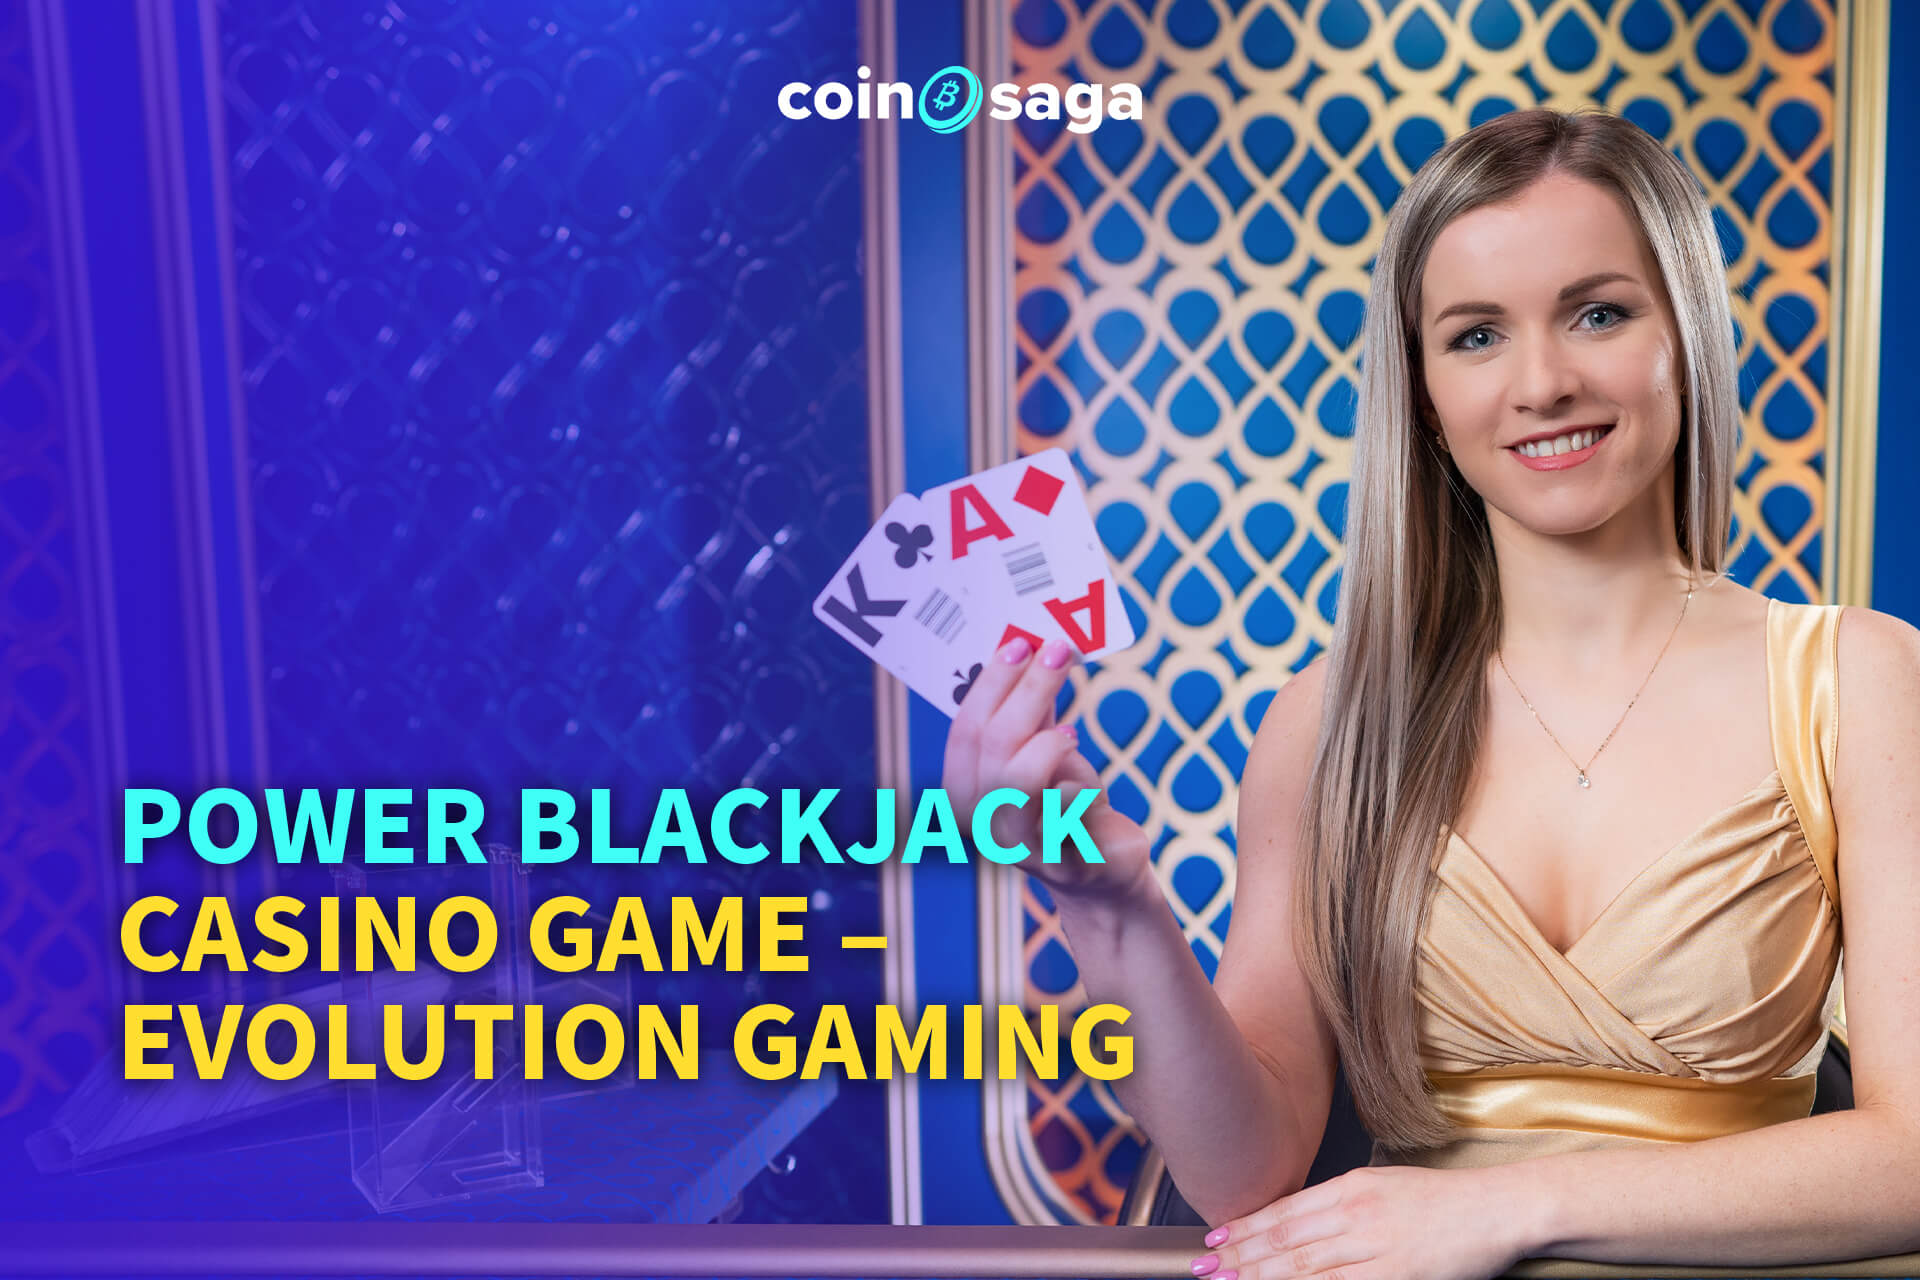 Power Blackjack Casino Game Evolution